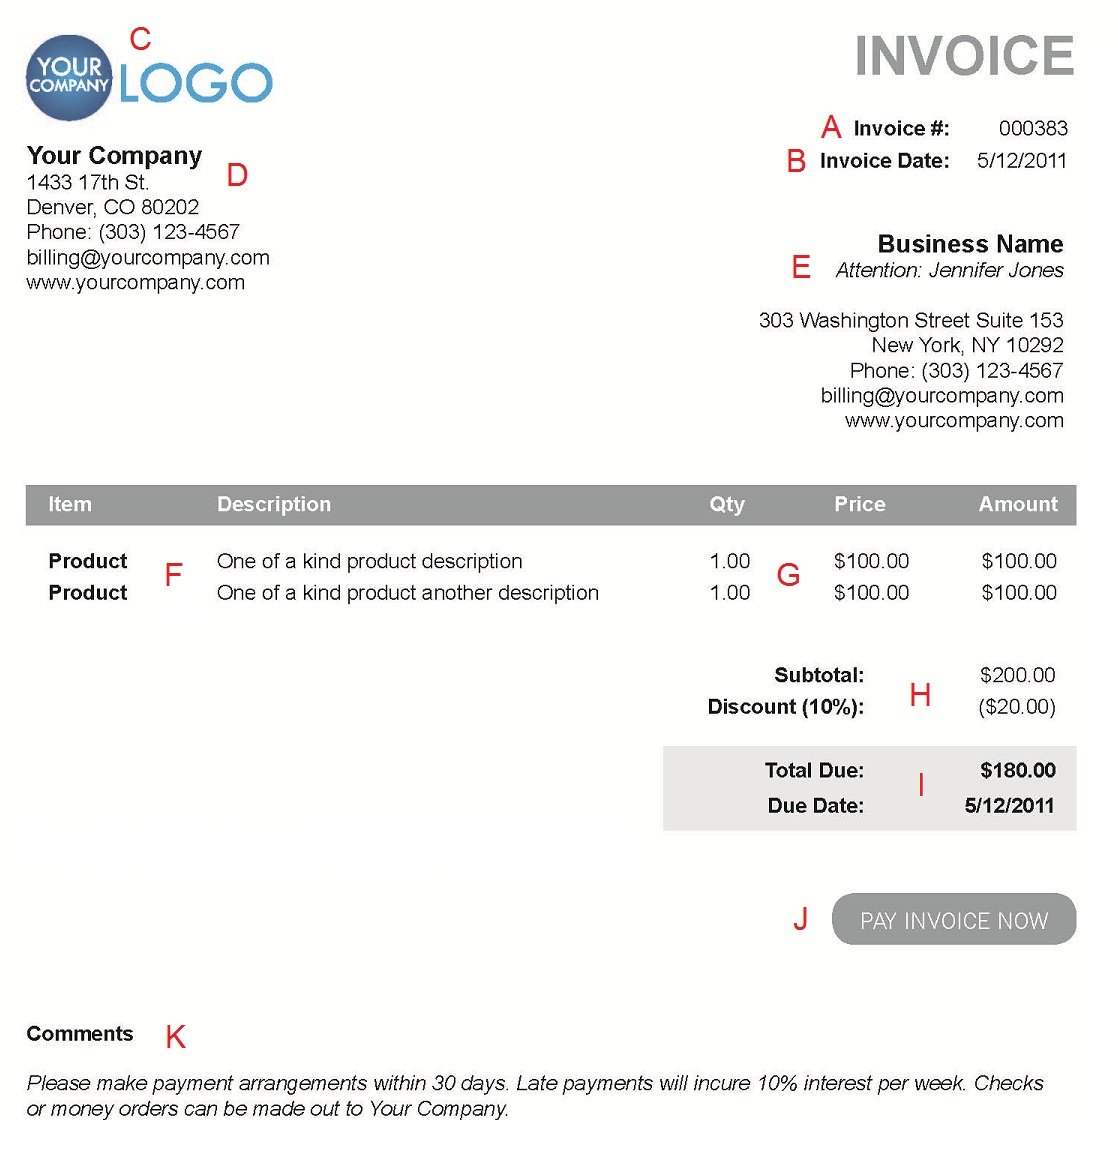 Amatospizzaus  Stunning The  Different Sections Of An Electronic Payment Invoice With Likable A  With Amazing Invoice Form Excel Also Invoice App Mac In Addition Sample Graphic Design Invoice And Invoice Tablet As Well As Freshbooks Invoices Additionally Office Invoice From Paysimplecom With Amatospizzaus  Likable The  Different Sections Of An Electronic Payment Invoice With Amazing A  And Stunning Invoice Form Excel Also Invoice App Mac In Addition Sample Graphic Design Invoice From Paysimplecom